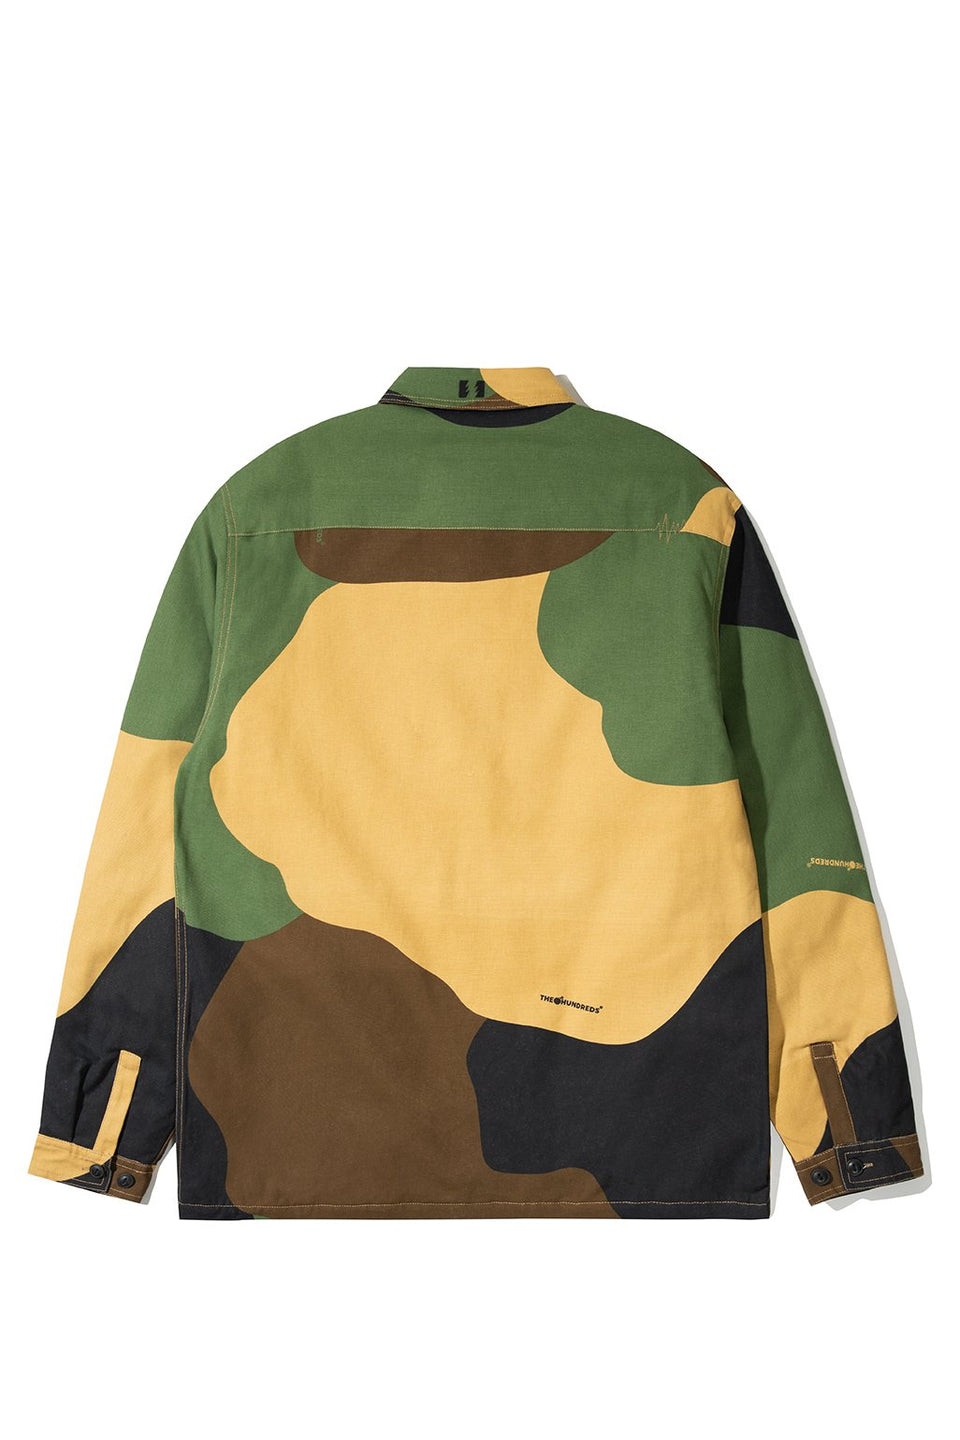 The Hundreds Kurtz Button-Up TOPS Camo